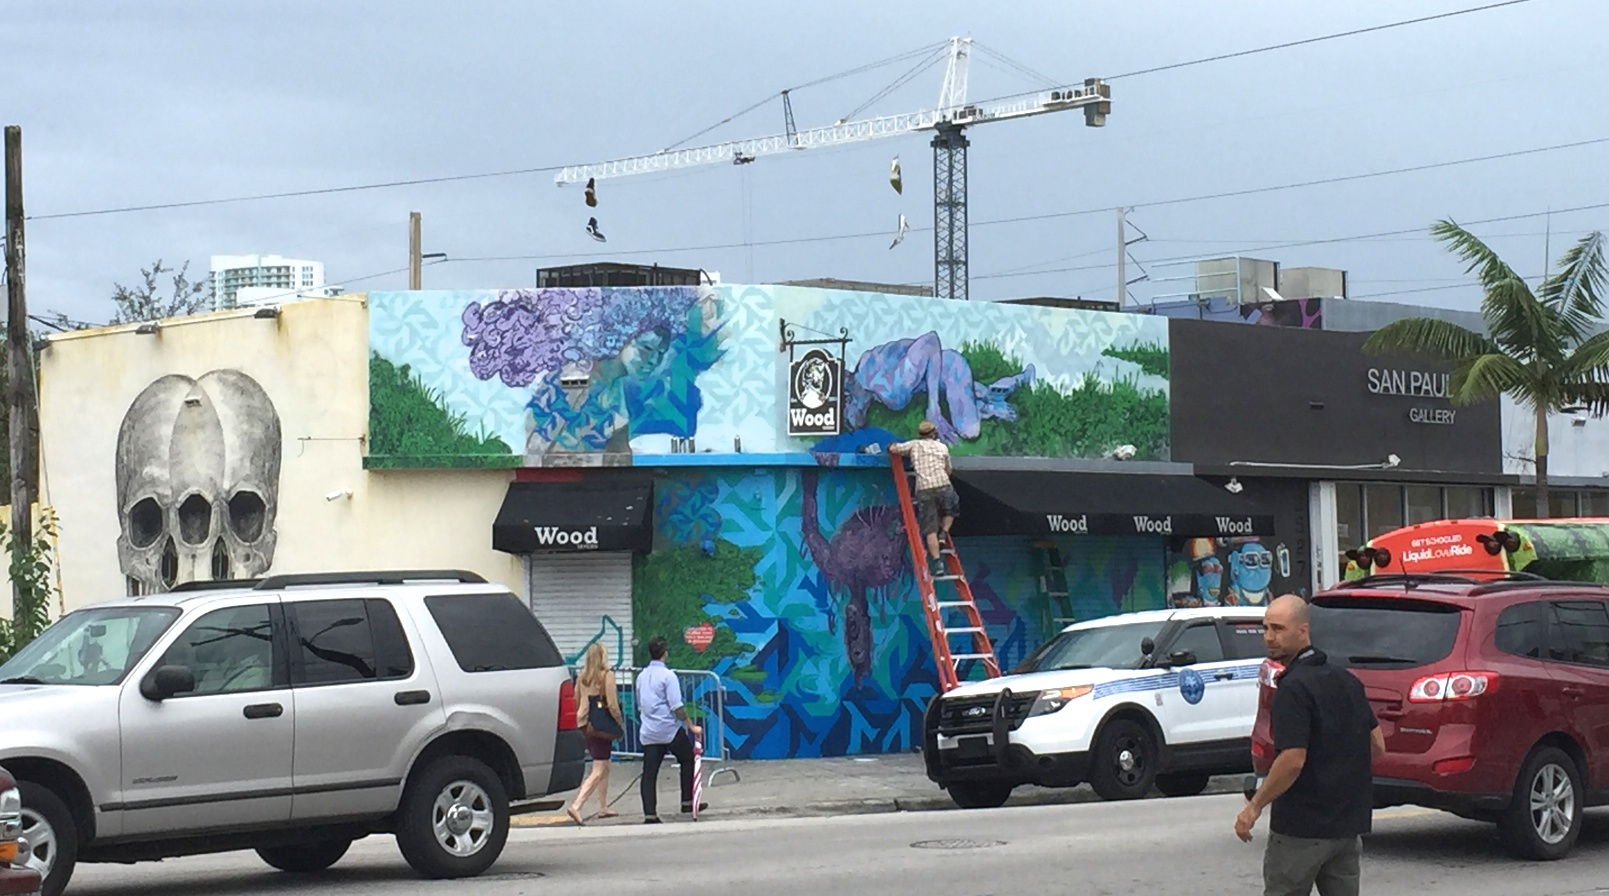 Narcissus, work-in-progress,  #MarcManiac, NW 2nd Avenue, Wynwood Miami, 12/15